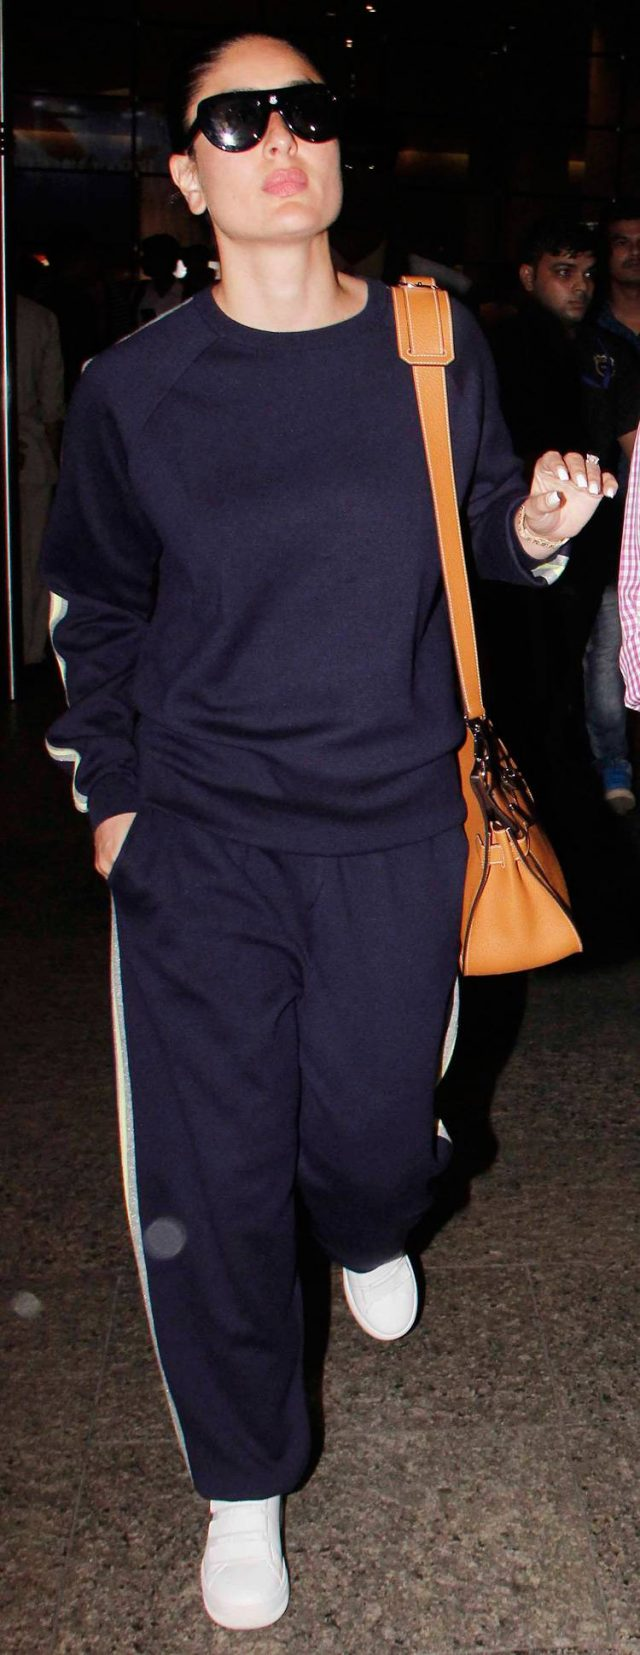 the track suit